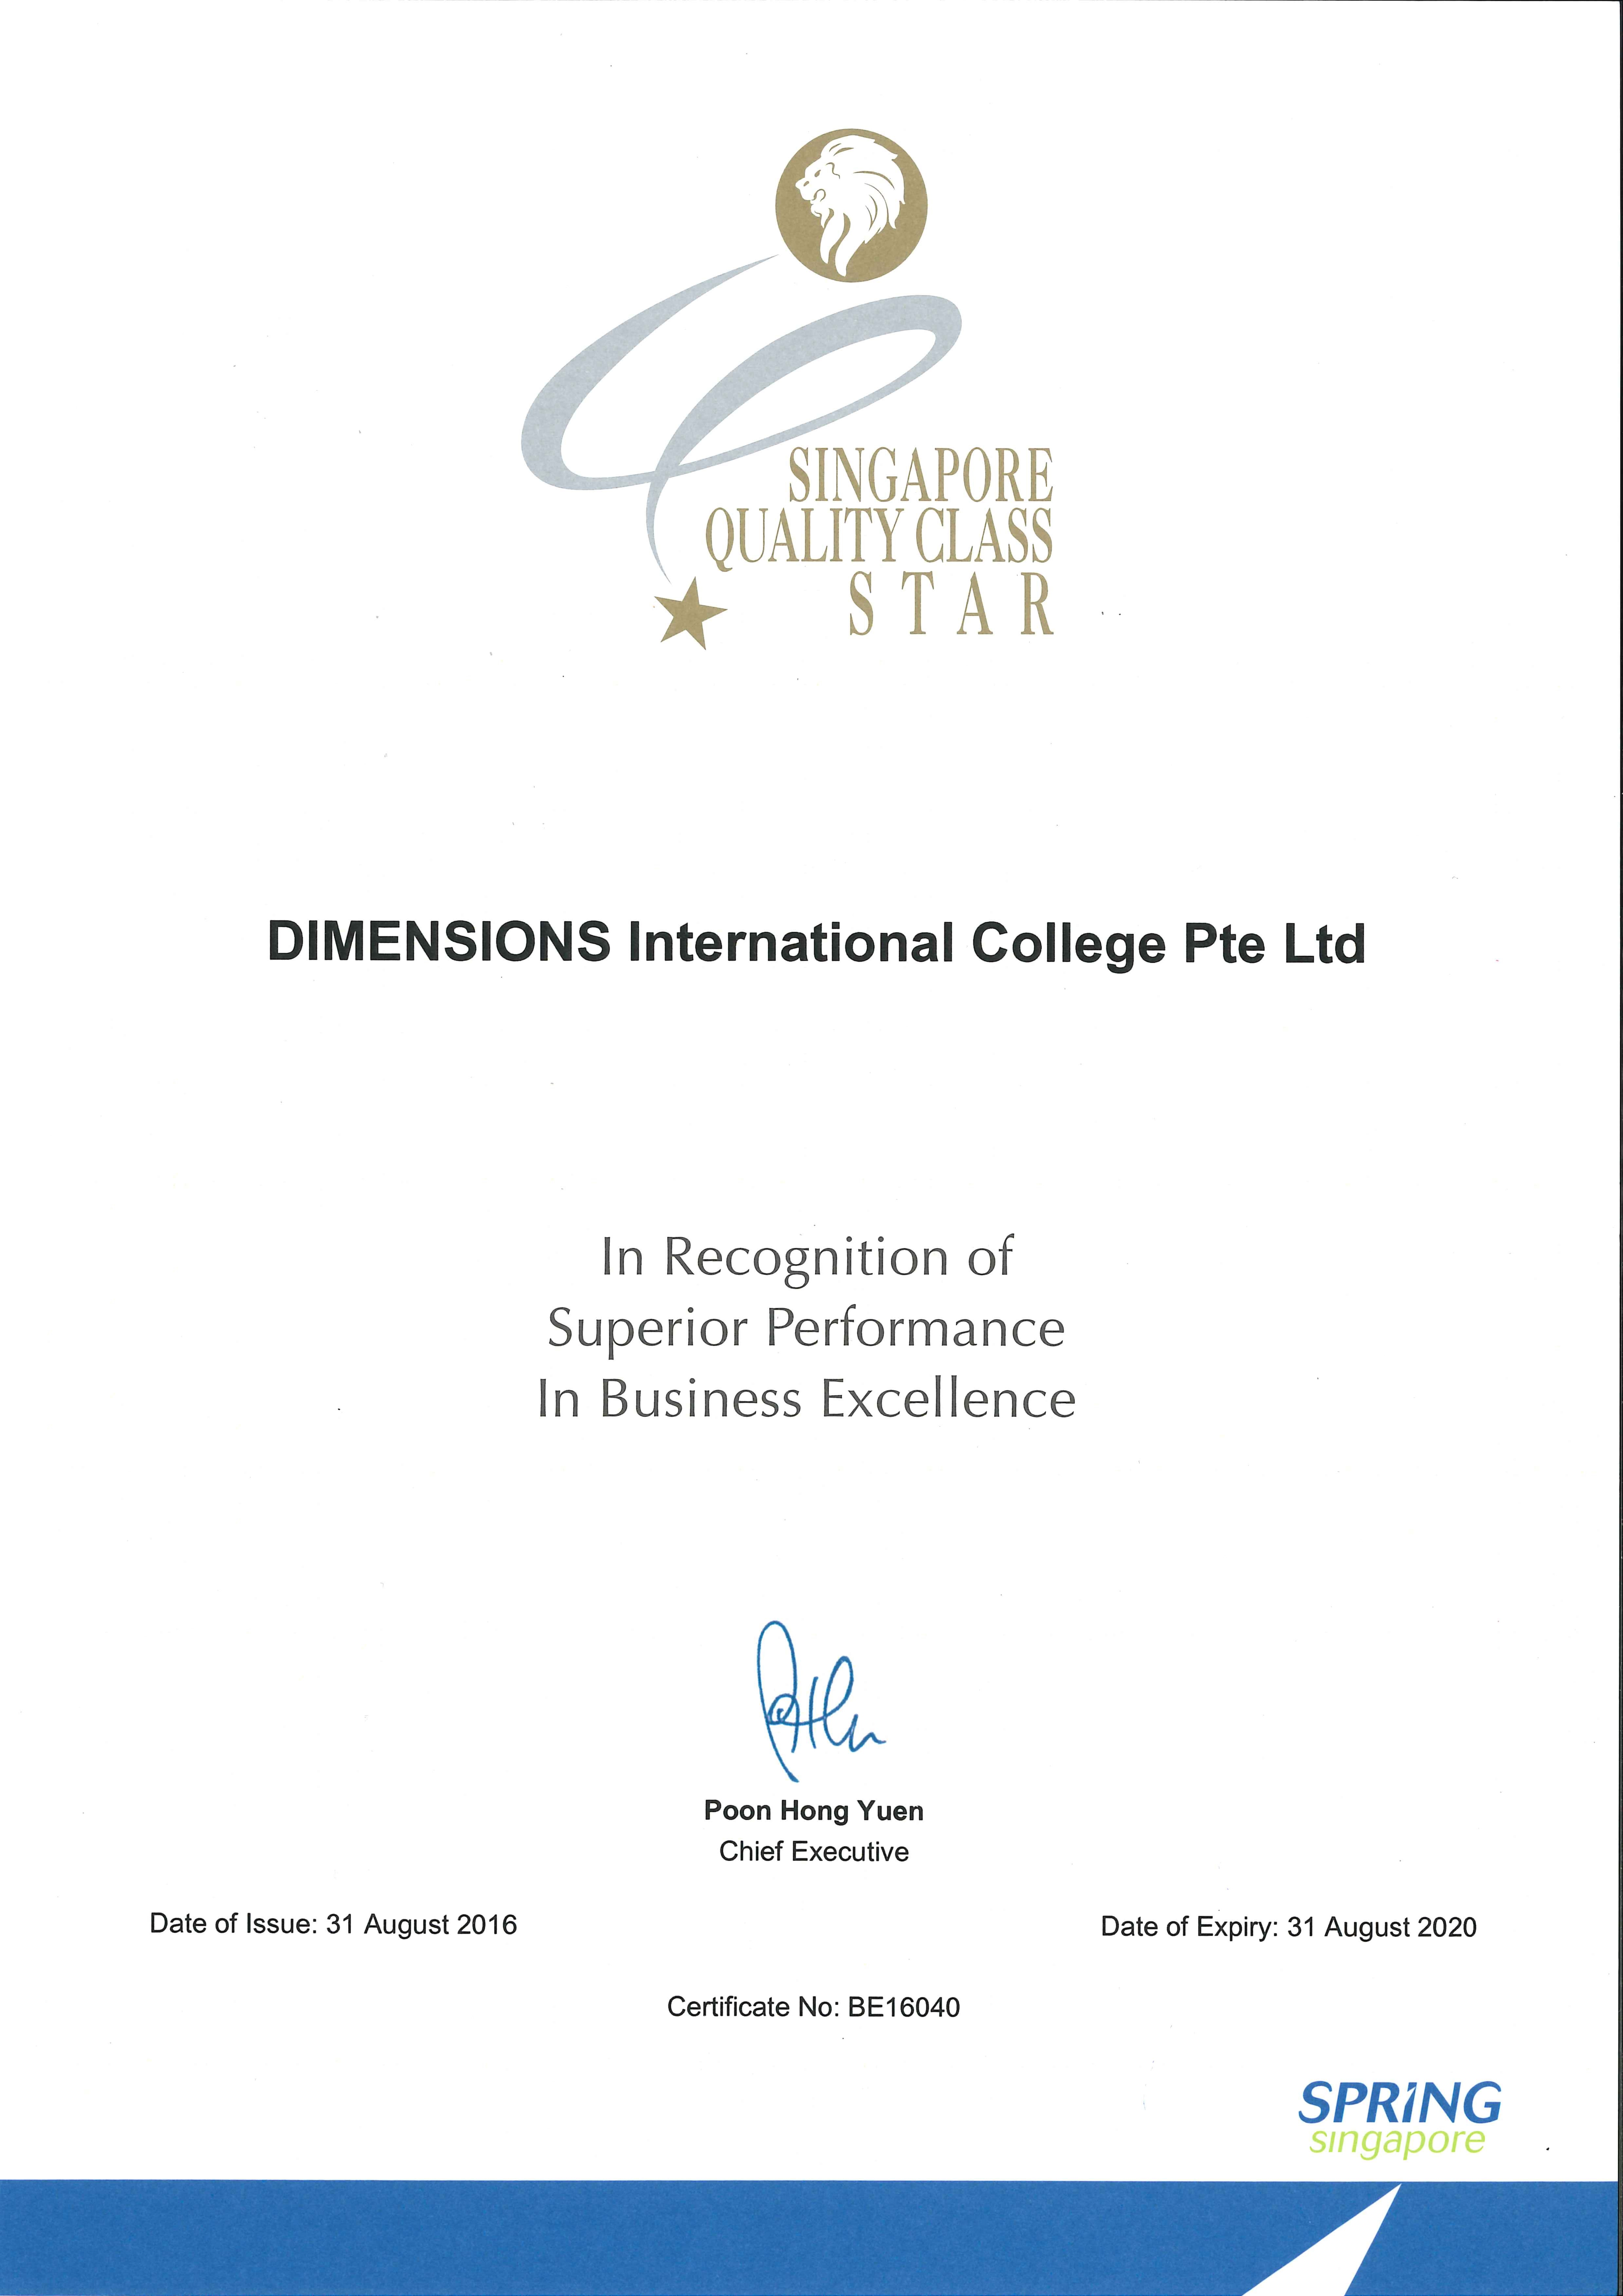 Awarded the sqc star certification for outstanding business awarded the sqc star certification for outstanding business excellence xflitez Images